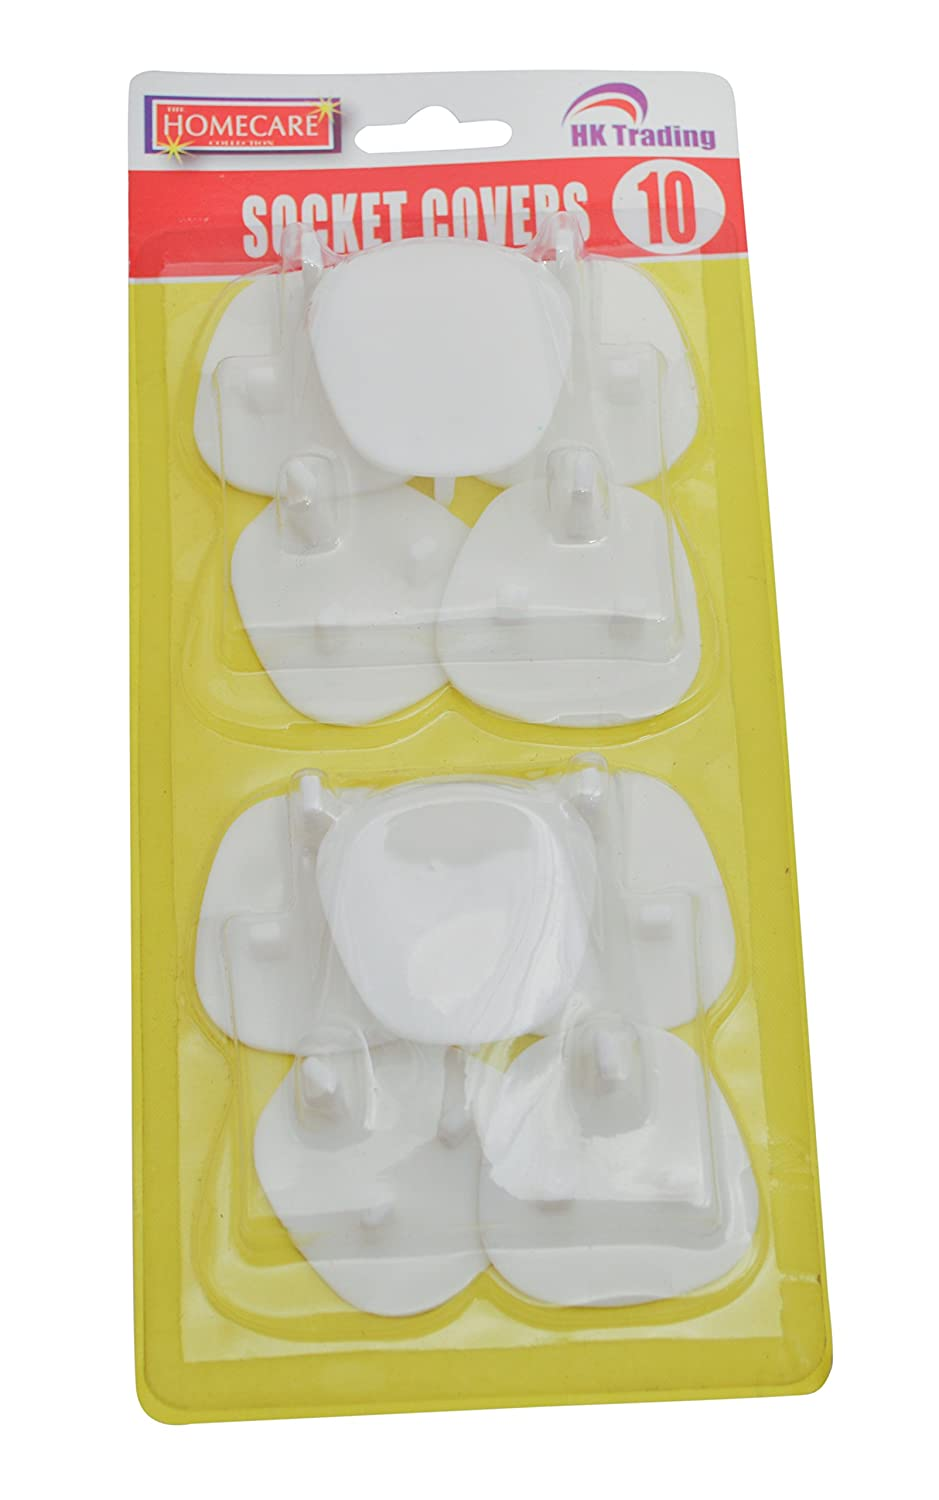 10 x SOCKET COVERS - 3 PIN SAFETY WALL BLANKING PROTECTOTS - FREE DELIVERY HK